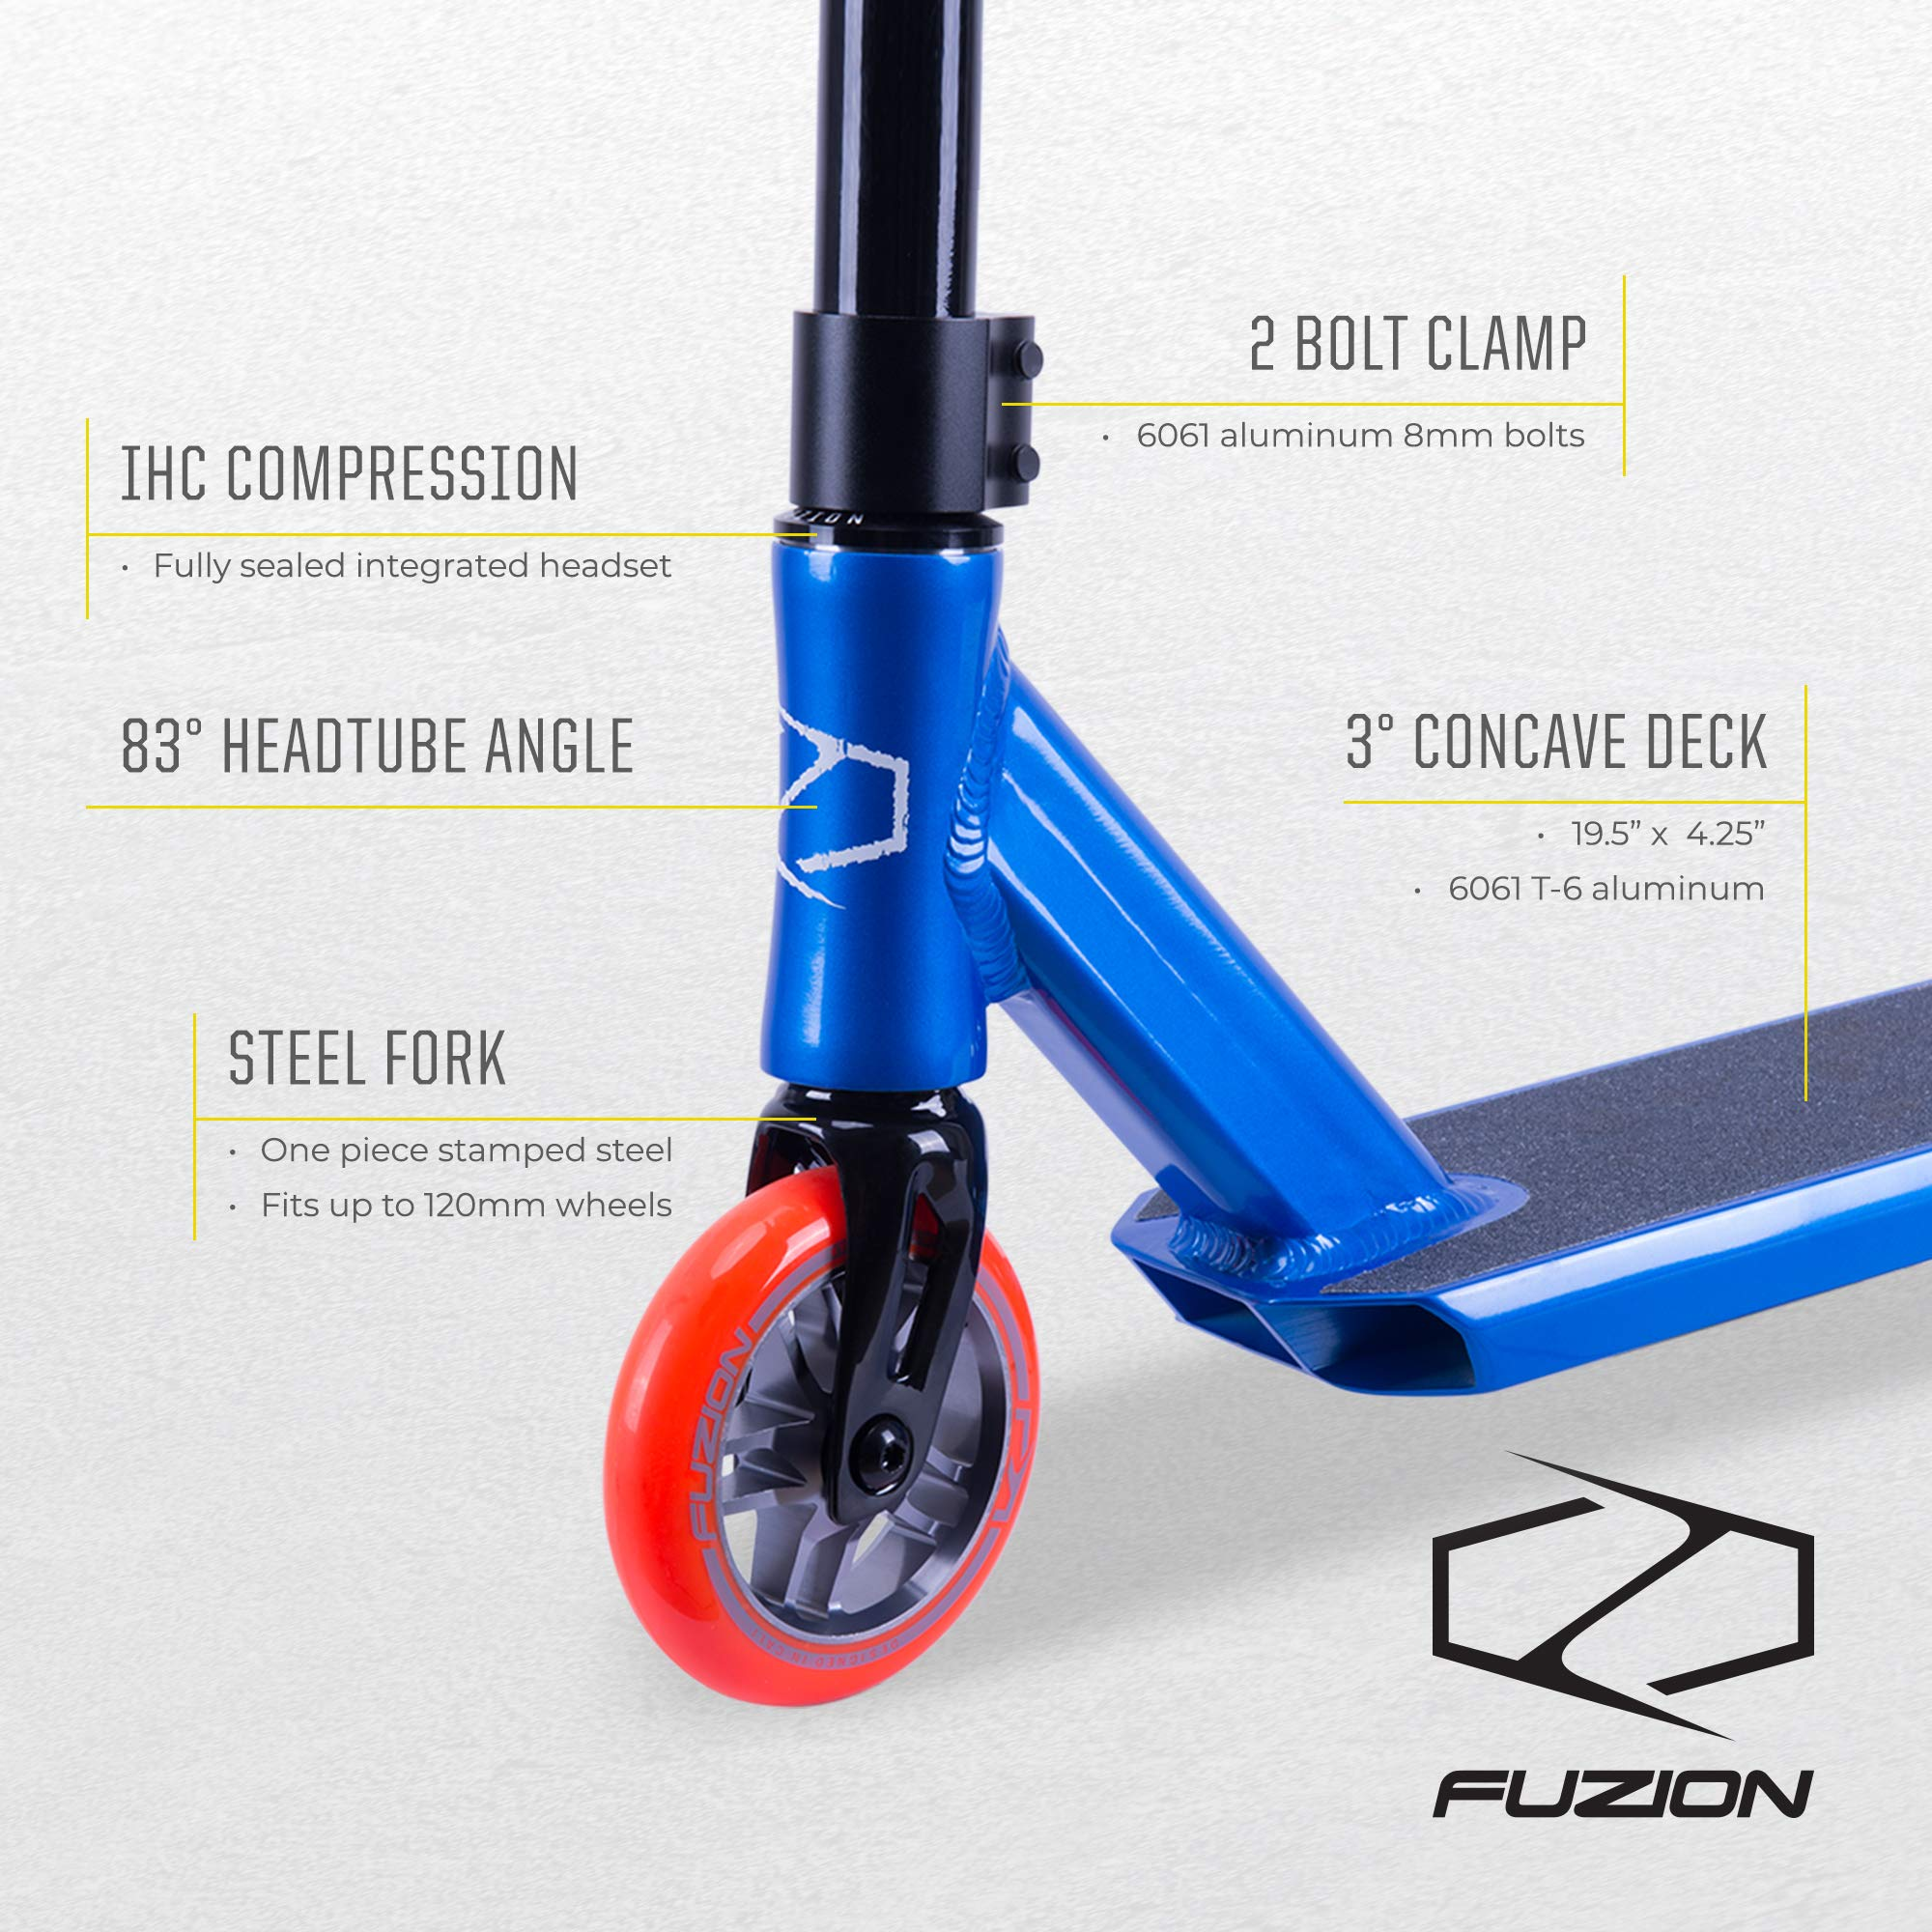 Fuzion Z250 Pro Scooters - Trick Scooter - Intermediate and Beginner Stunt Scooters for Kids 8 Years and Up, Teens and Adults – Durable Freestyle Kick Scooter for Boys and Girls (2019 Racing Blue) by Fuzion (Image #2)